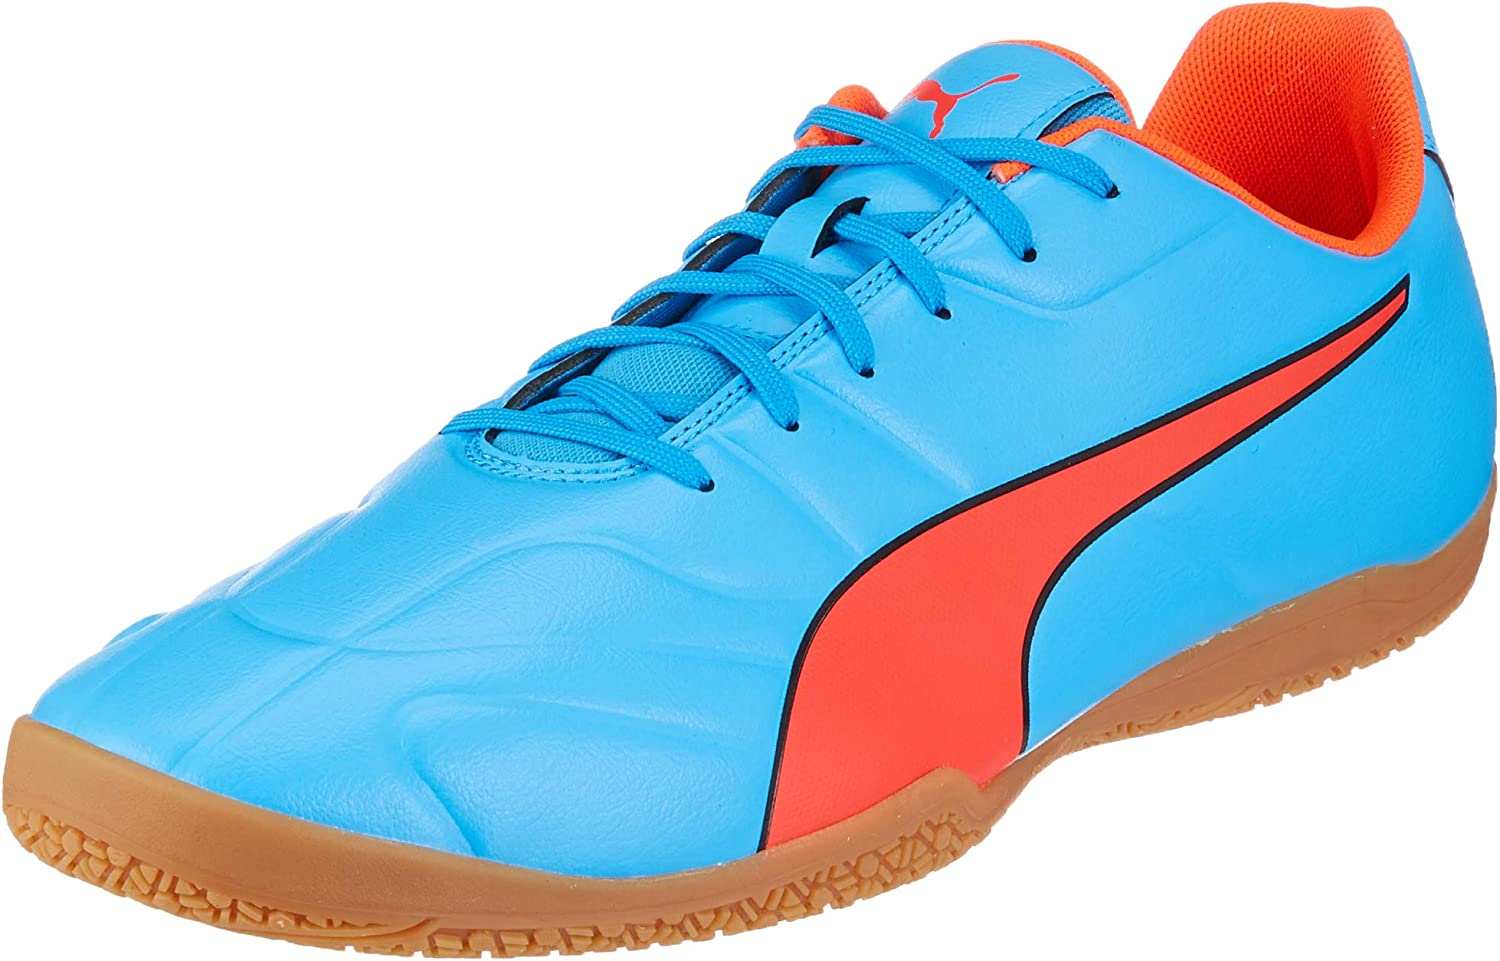 Puma Men's Classico C Ii Sala Multisport Indoor shoes